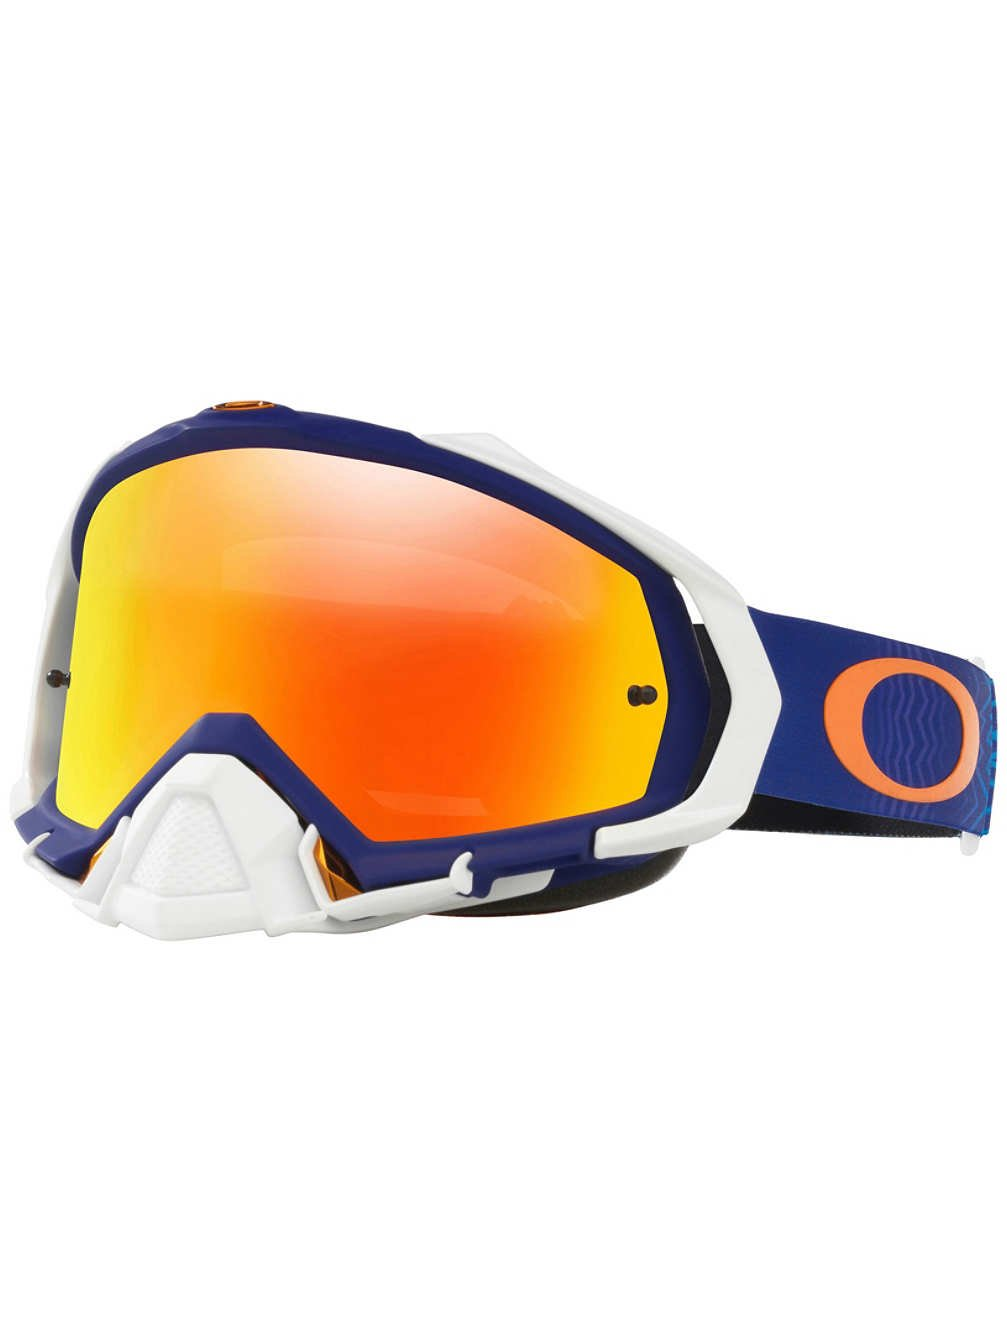 Oakley Mayhem Pro MX Shockwave Men's Dirt Motocross Motorcycle Goggles Eyewear - Blue Orange/Fire Iridium / One Size Fits All